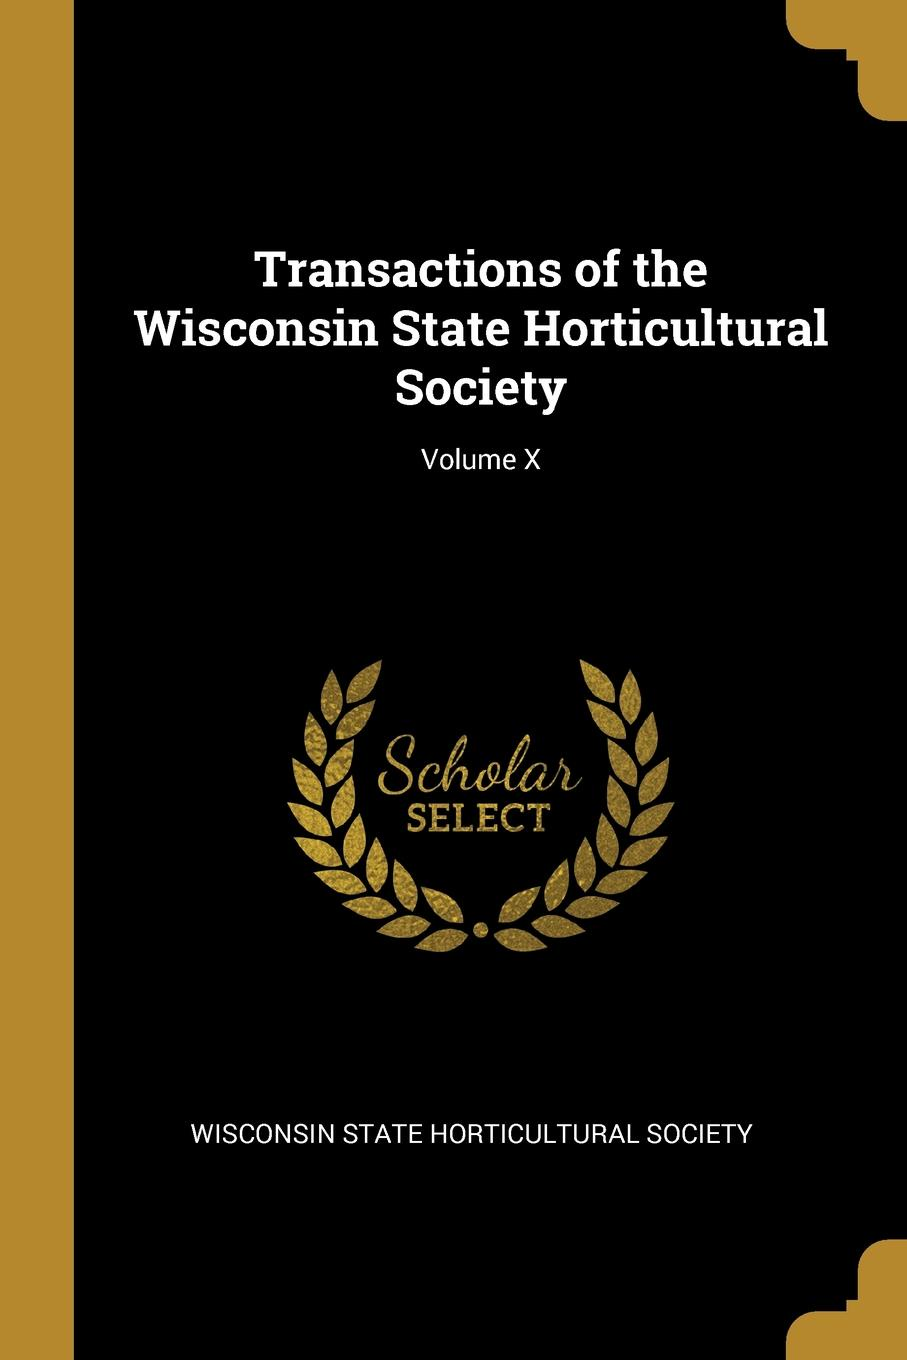 Wisconsin State Horticultural Society Transactions of the Wisconsin State Horticultural Society; Volume X